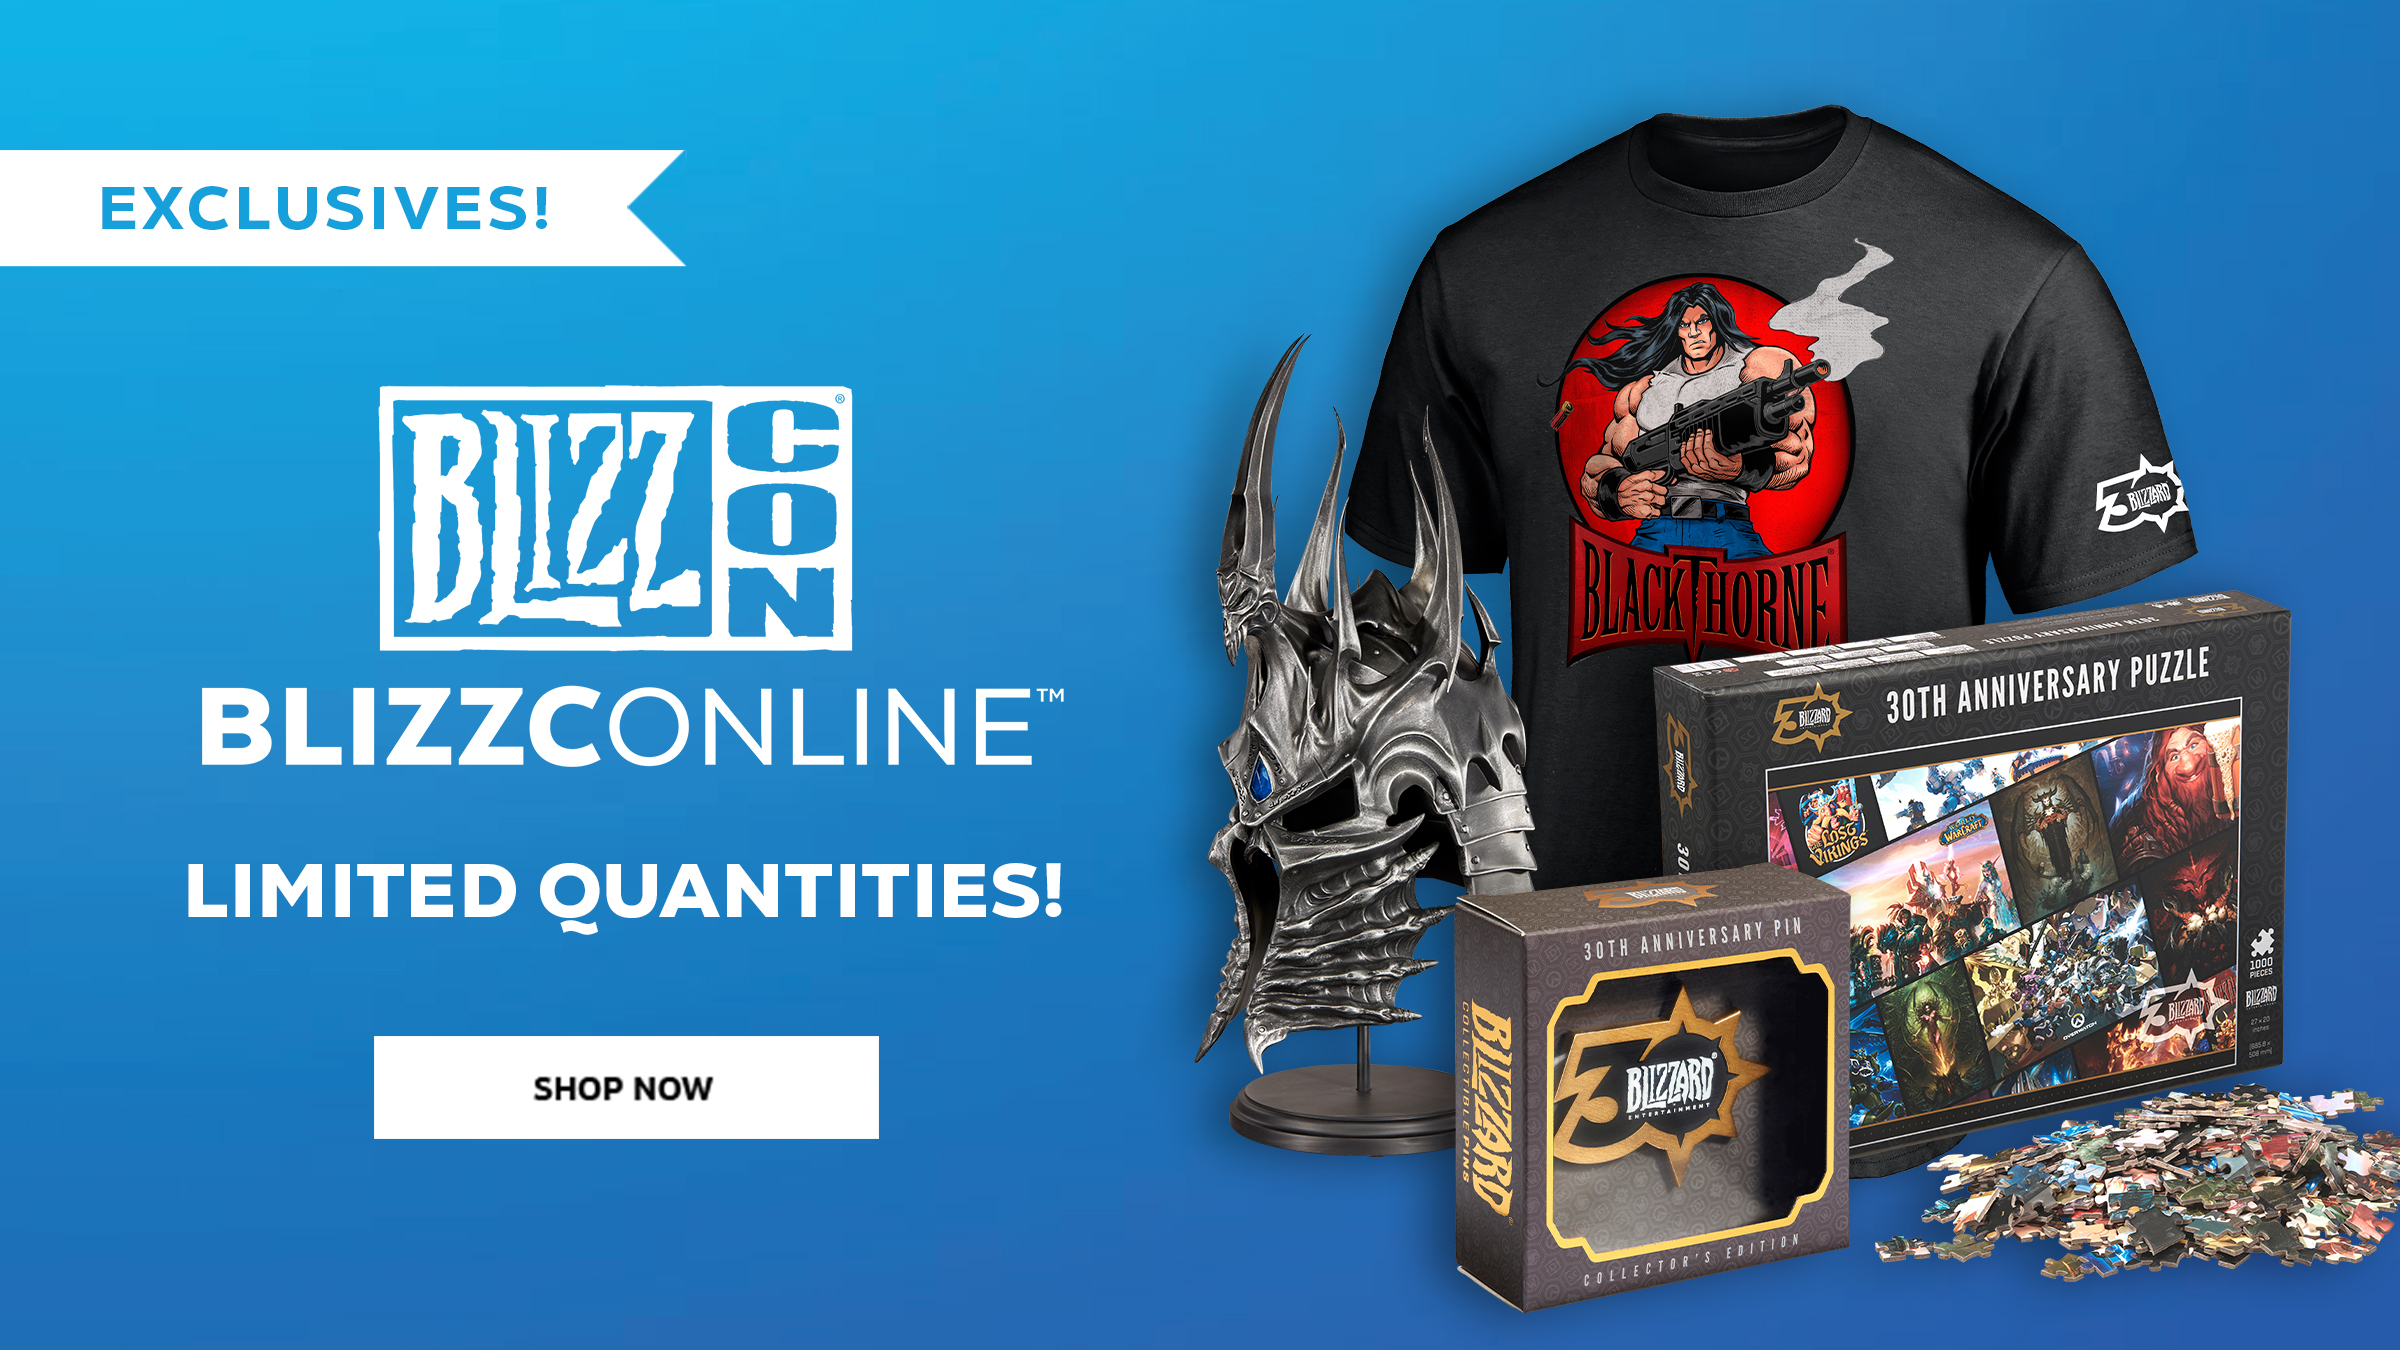 BlizzConline Gear Is Now Available!